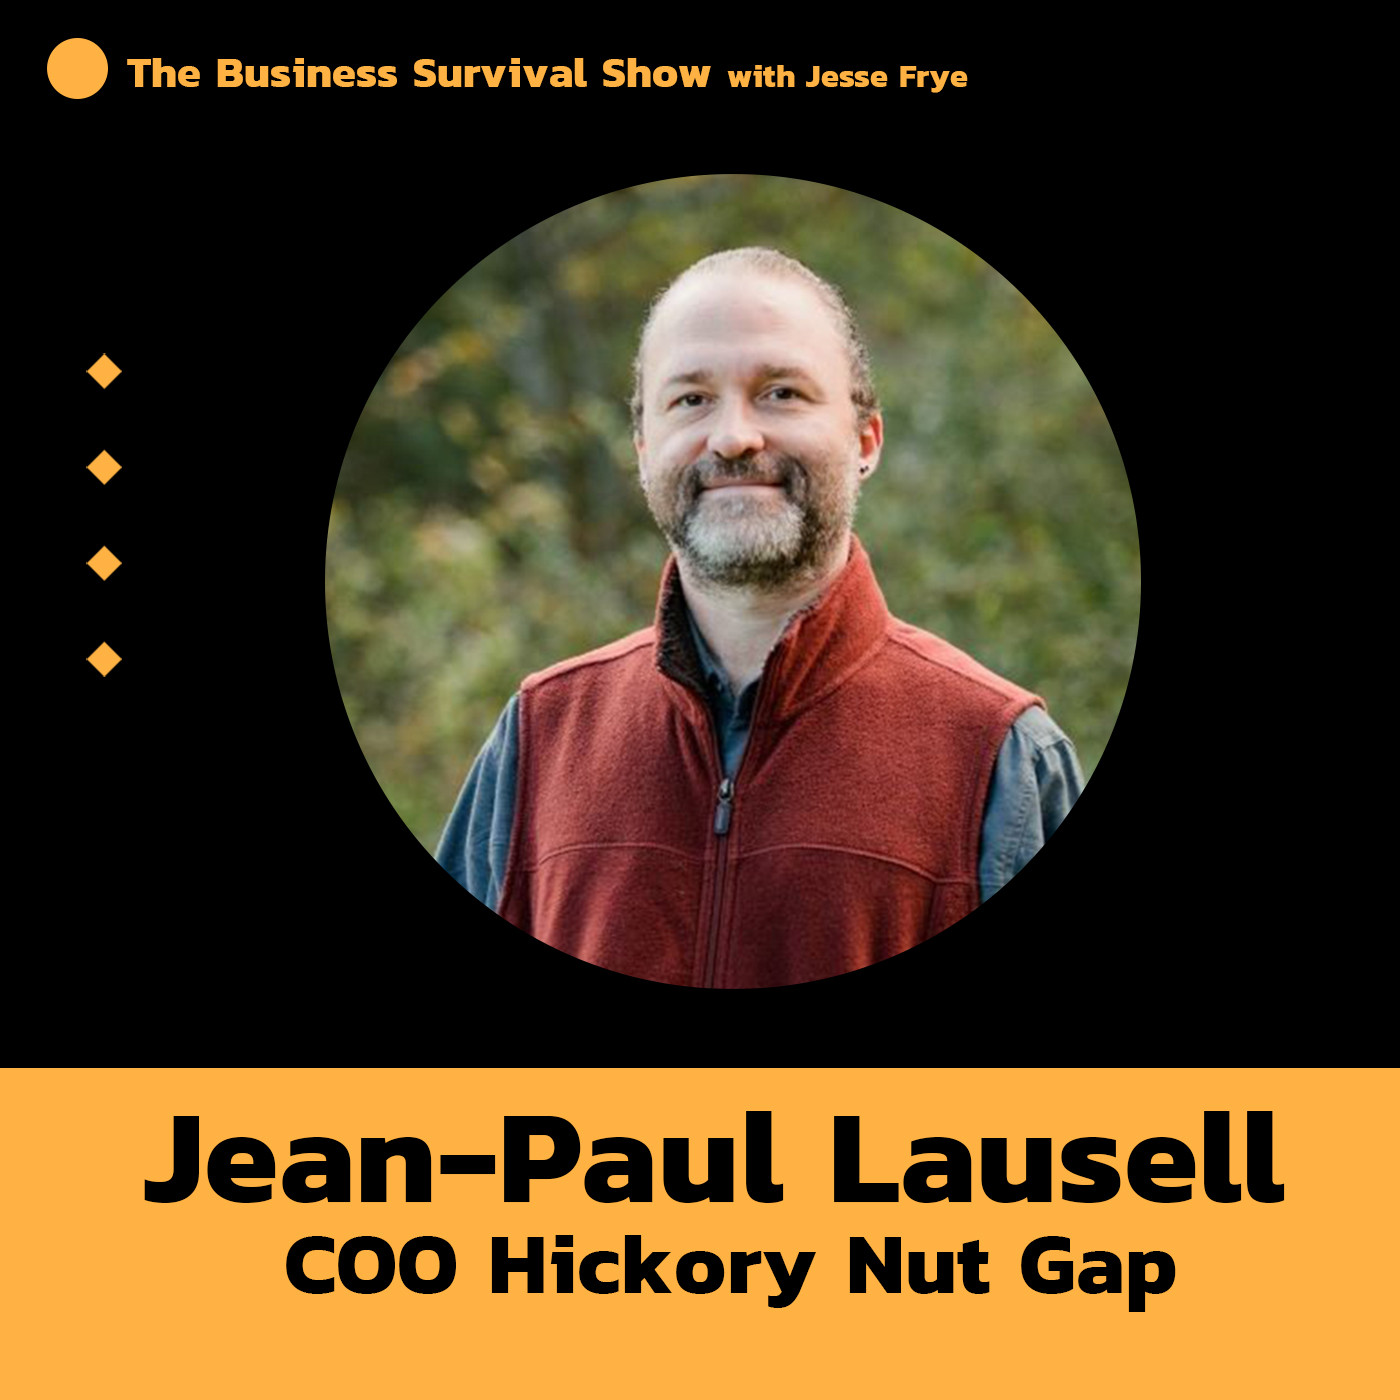 COO of Hickory Nut Gap, Jean-Paul Lausell talks organizational shifts and scaling